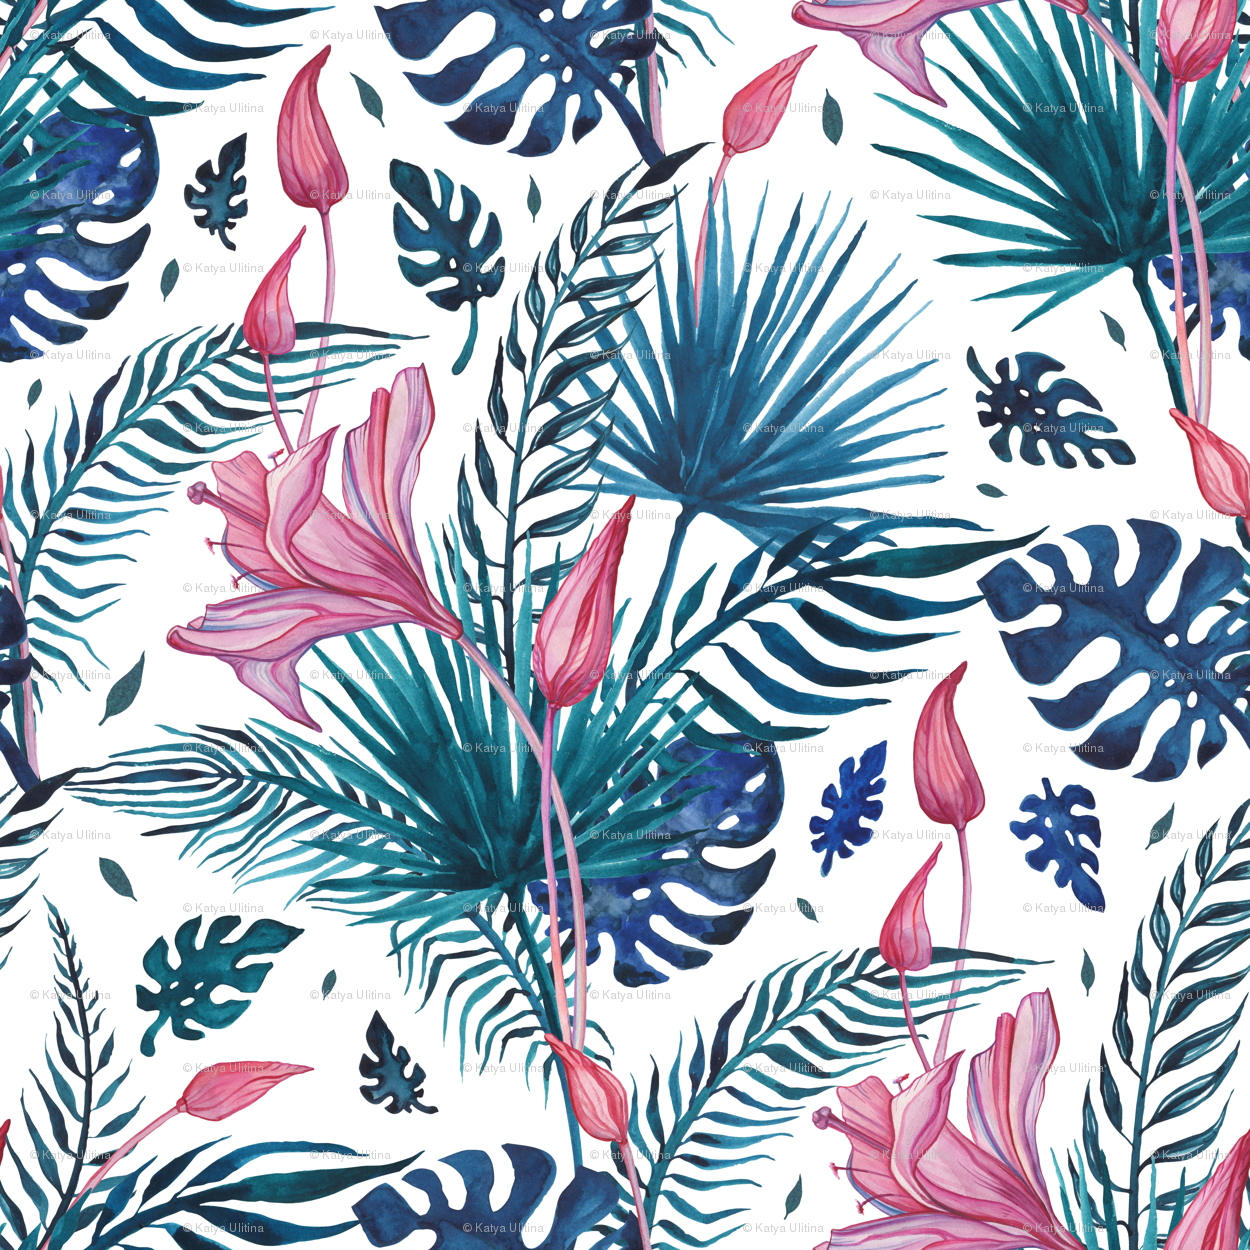 Exotic Tropical Flowers Wallpaper Katyau Spoonflower